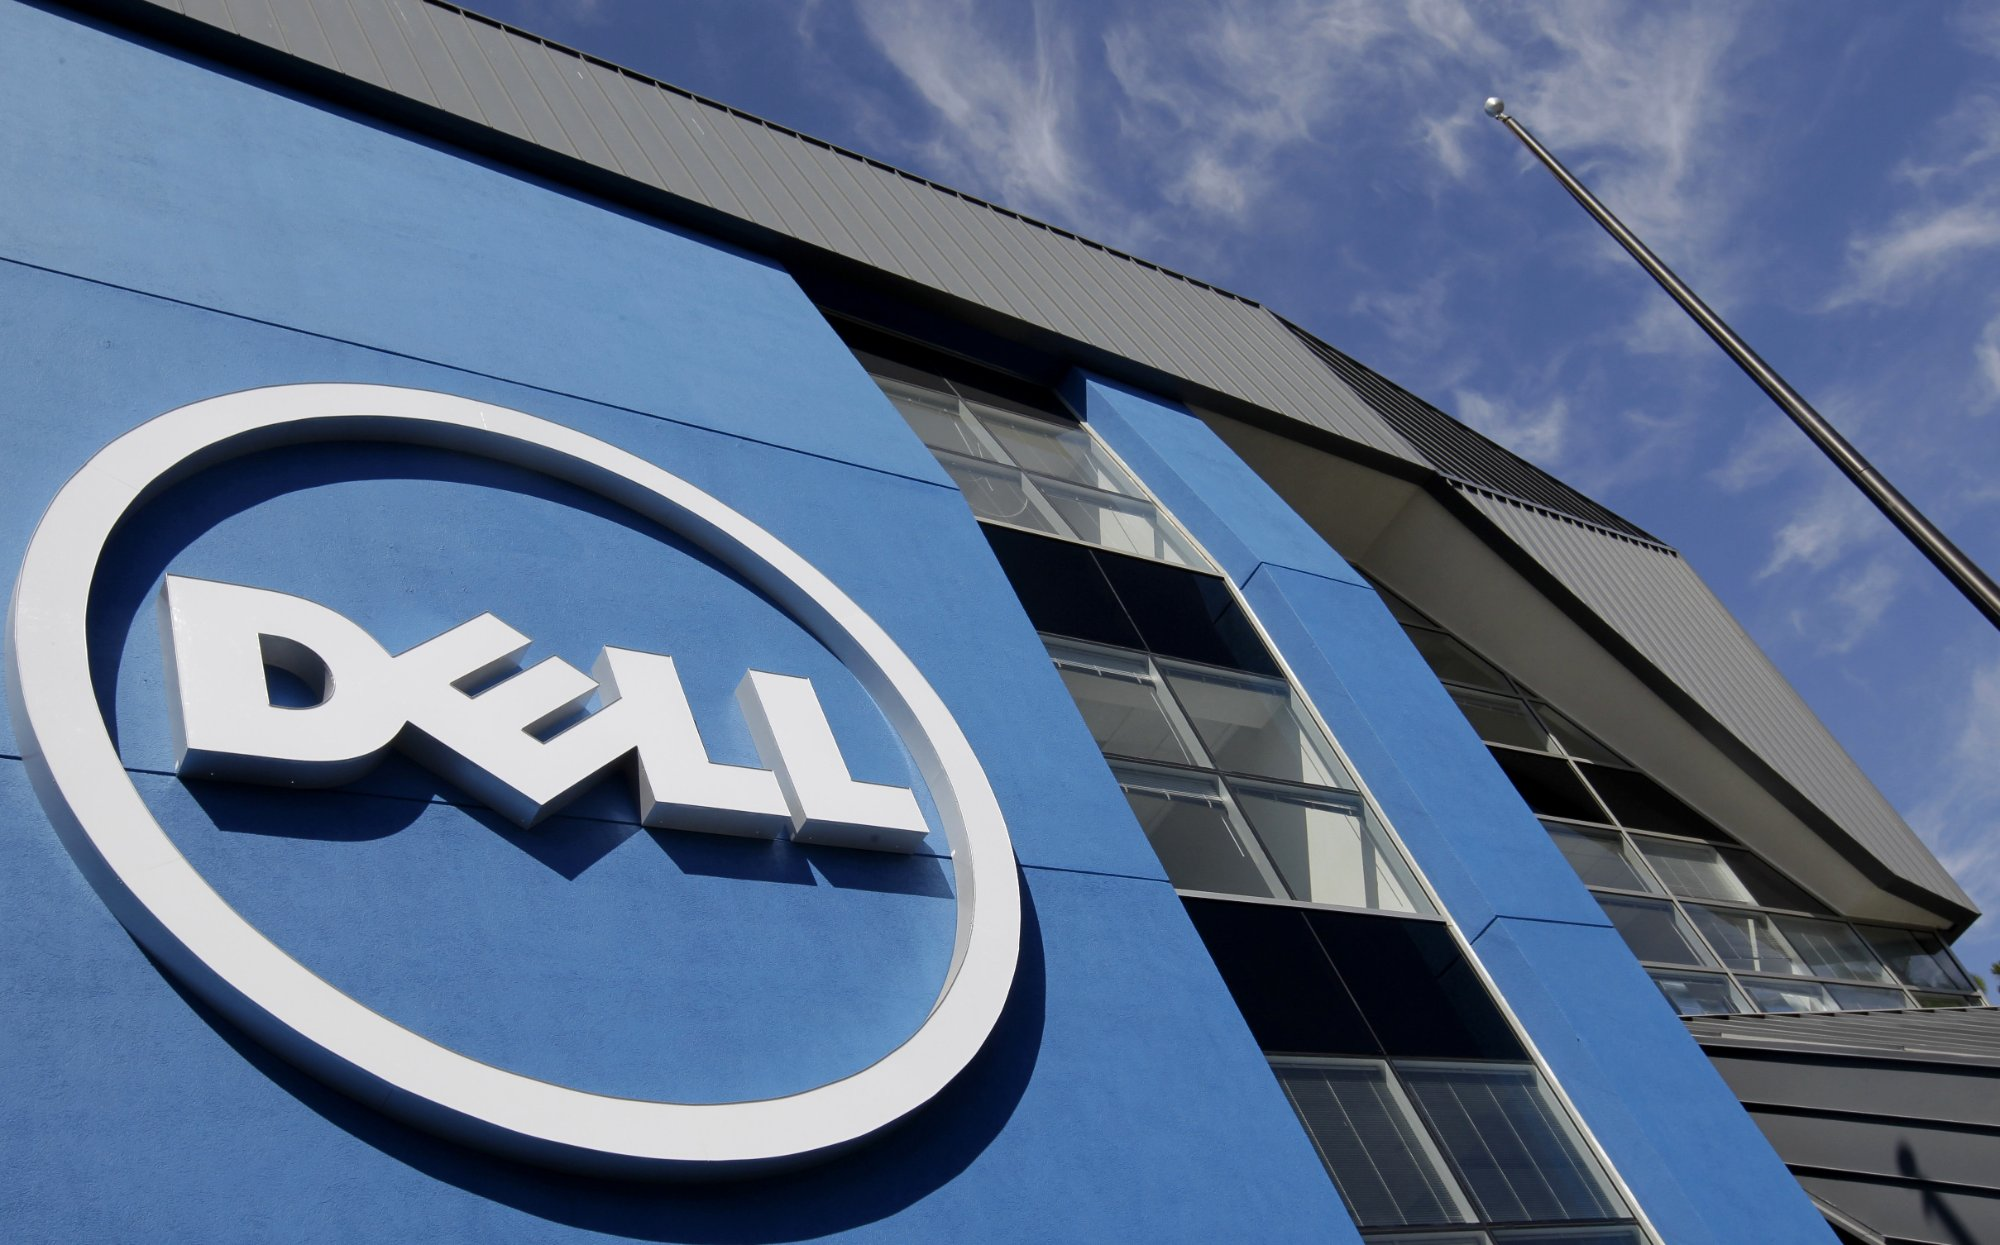 Pinnacle Financial Partners Inc. Sells 1386 Shares of Dell Technologies Inc. (DVMT)